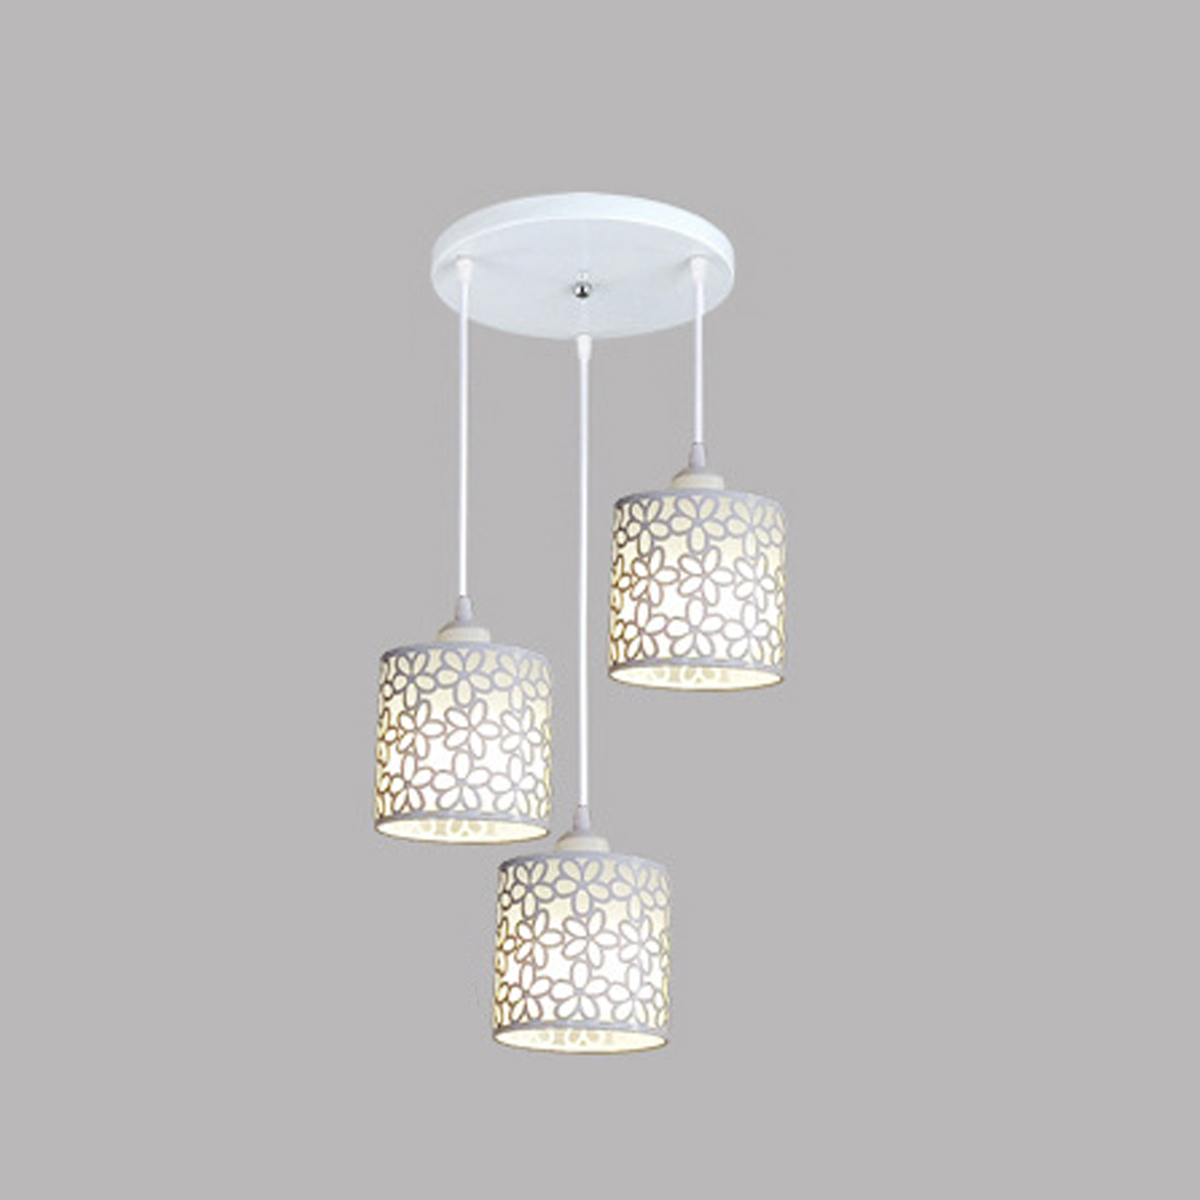 Modern Nordic LED Pendant Lights Fixtures Iron Hollow Out Hanging Pendant Lamp Home Decoration For Dining Room Bedroom Shop Bar